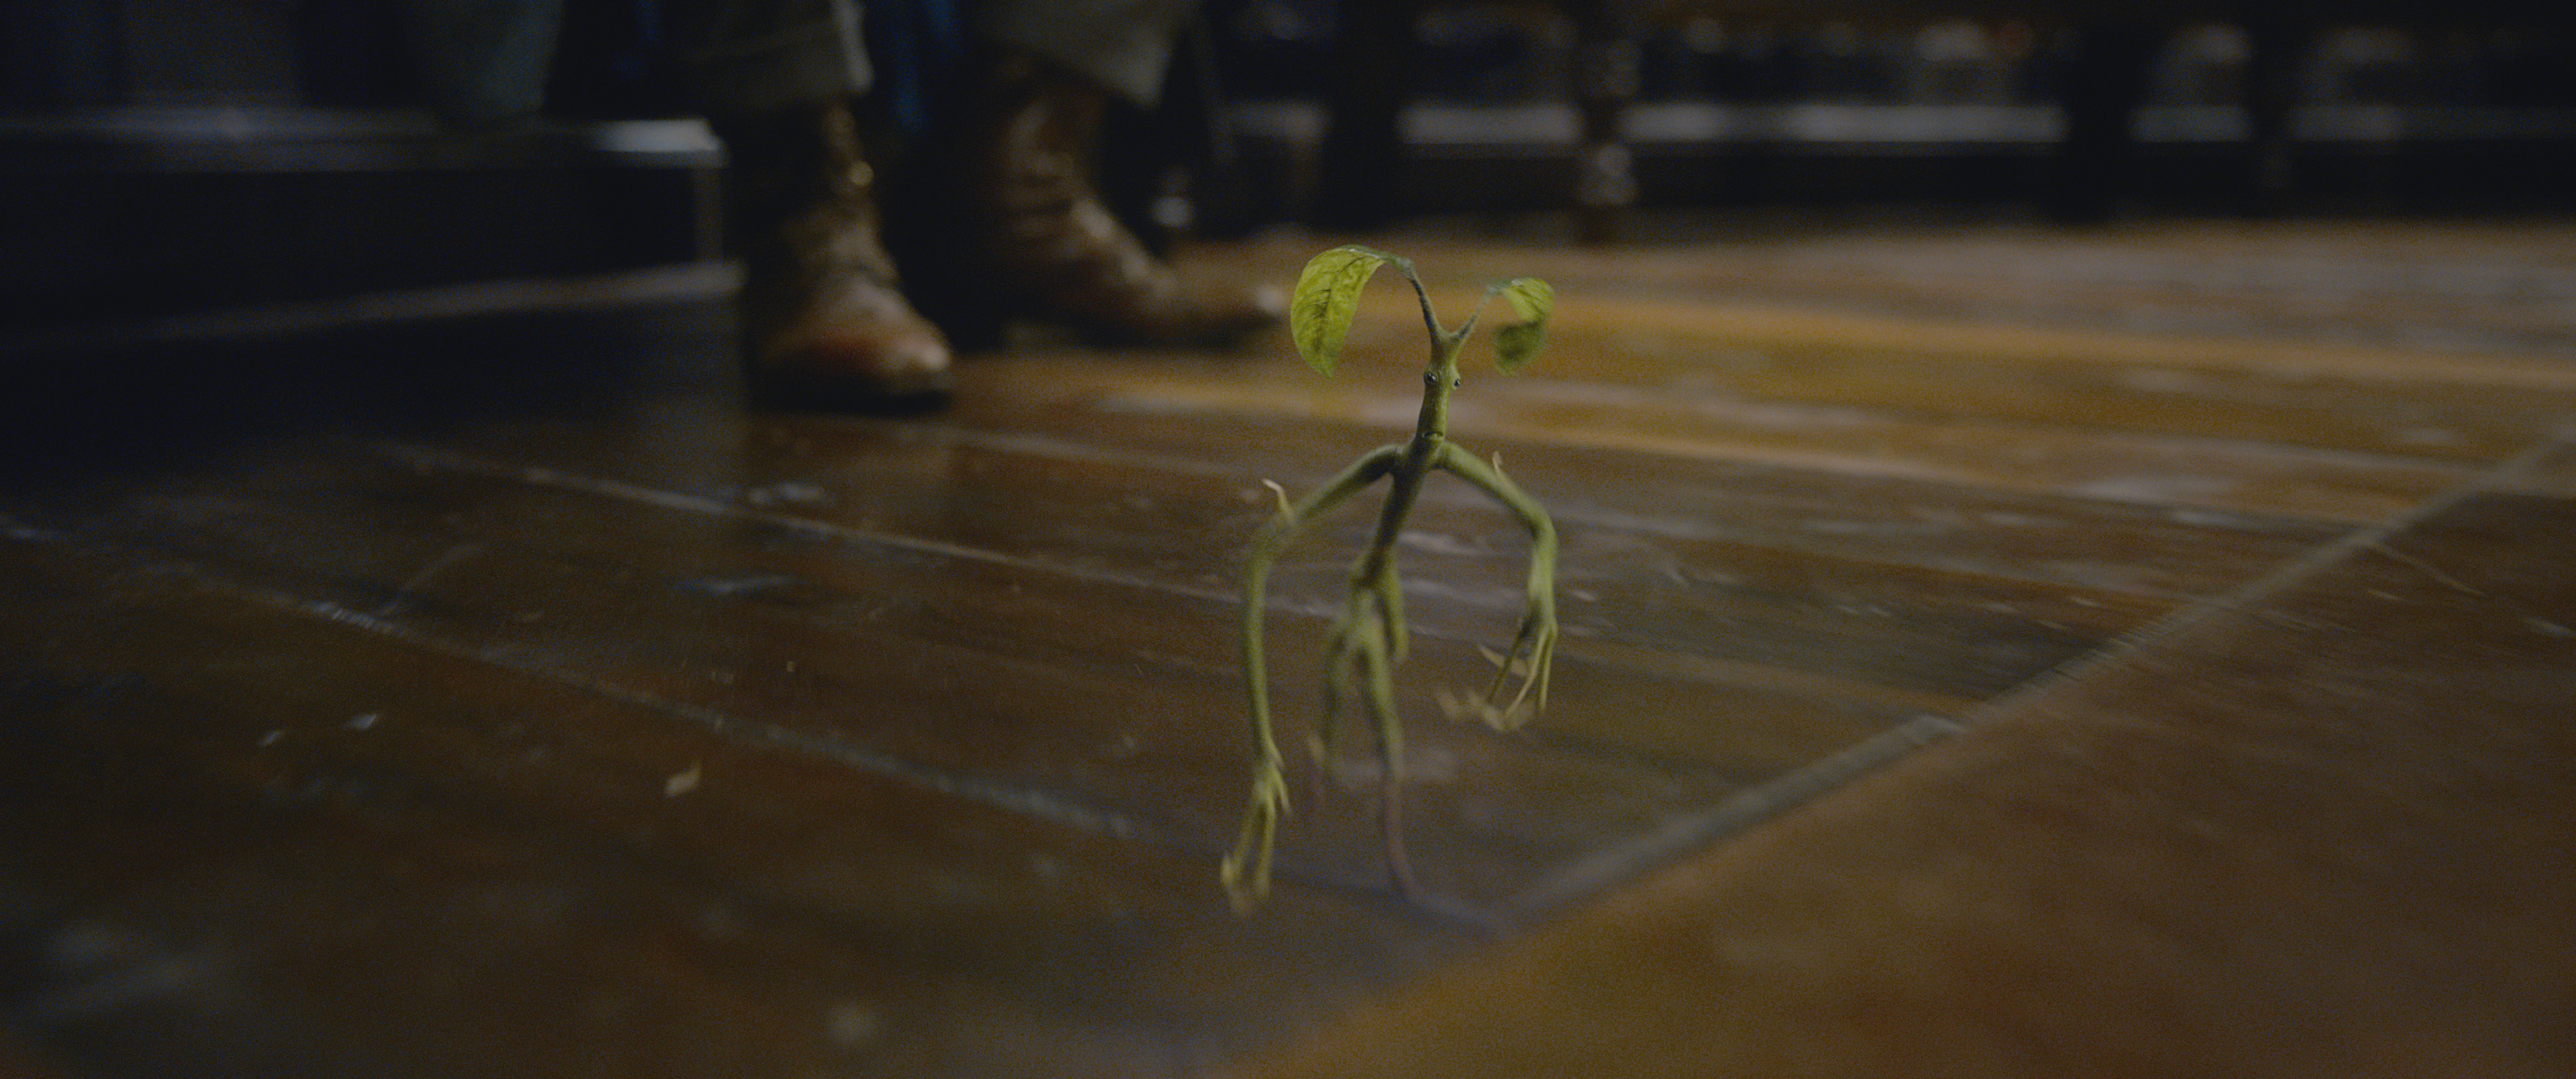 The Tree-dwelling Bowtruckle